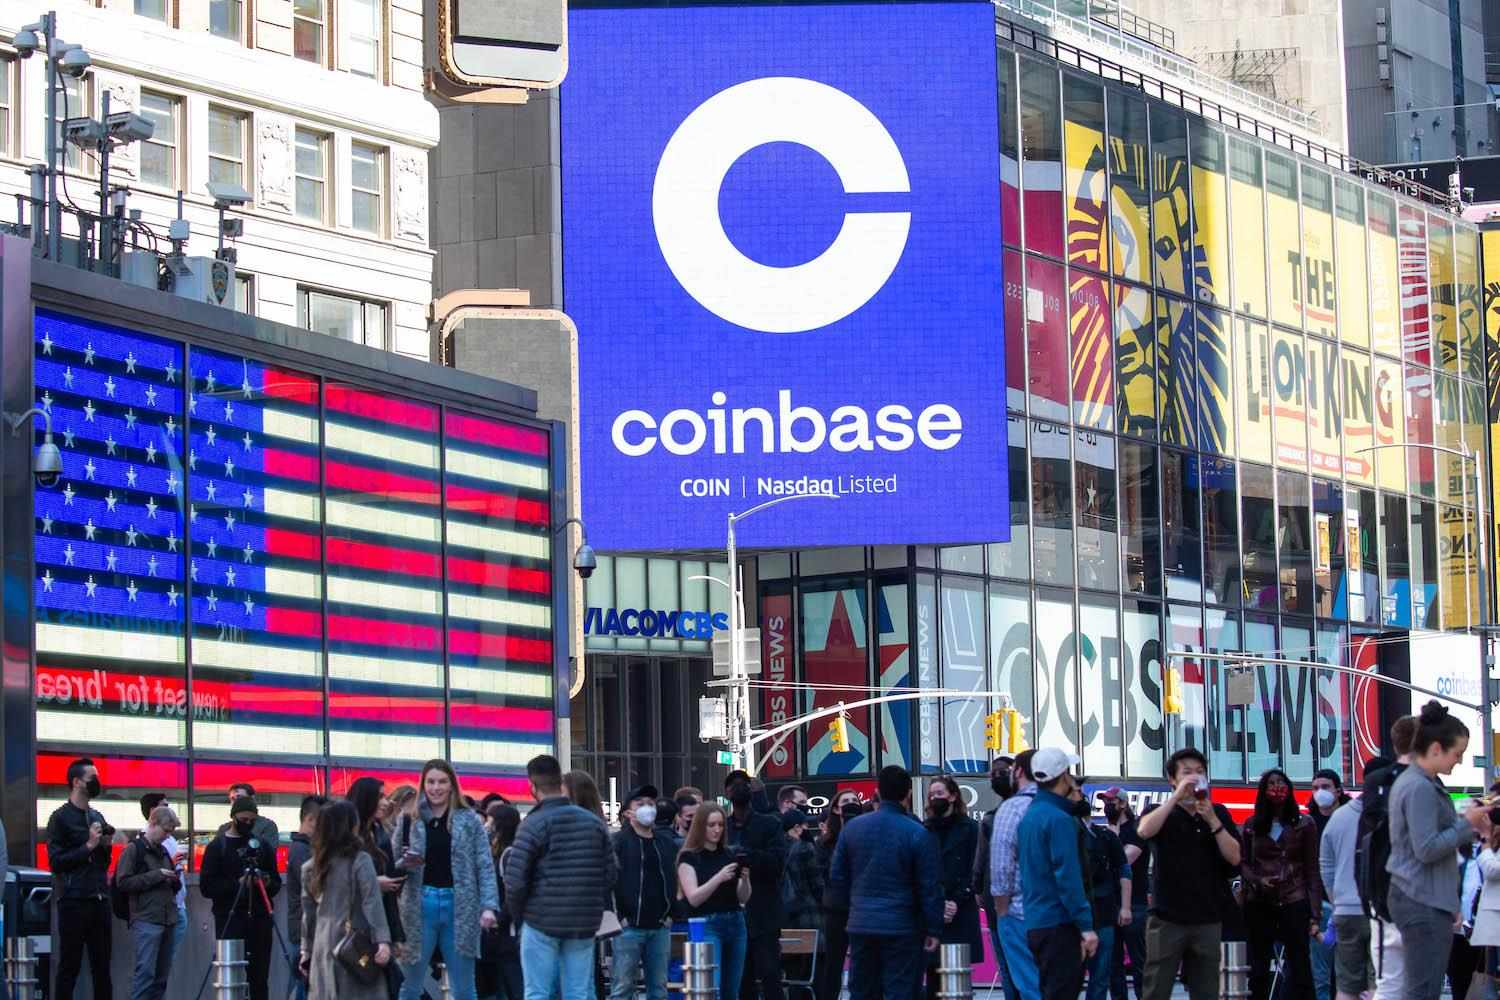 wall-street crypto pause wrongplease went